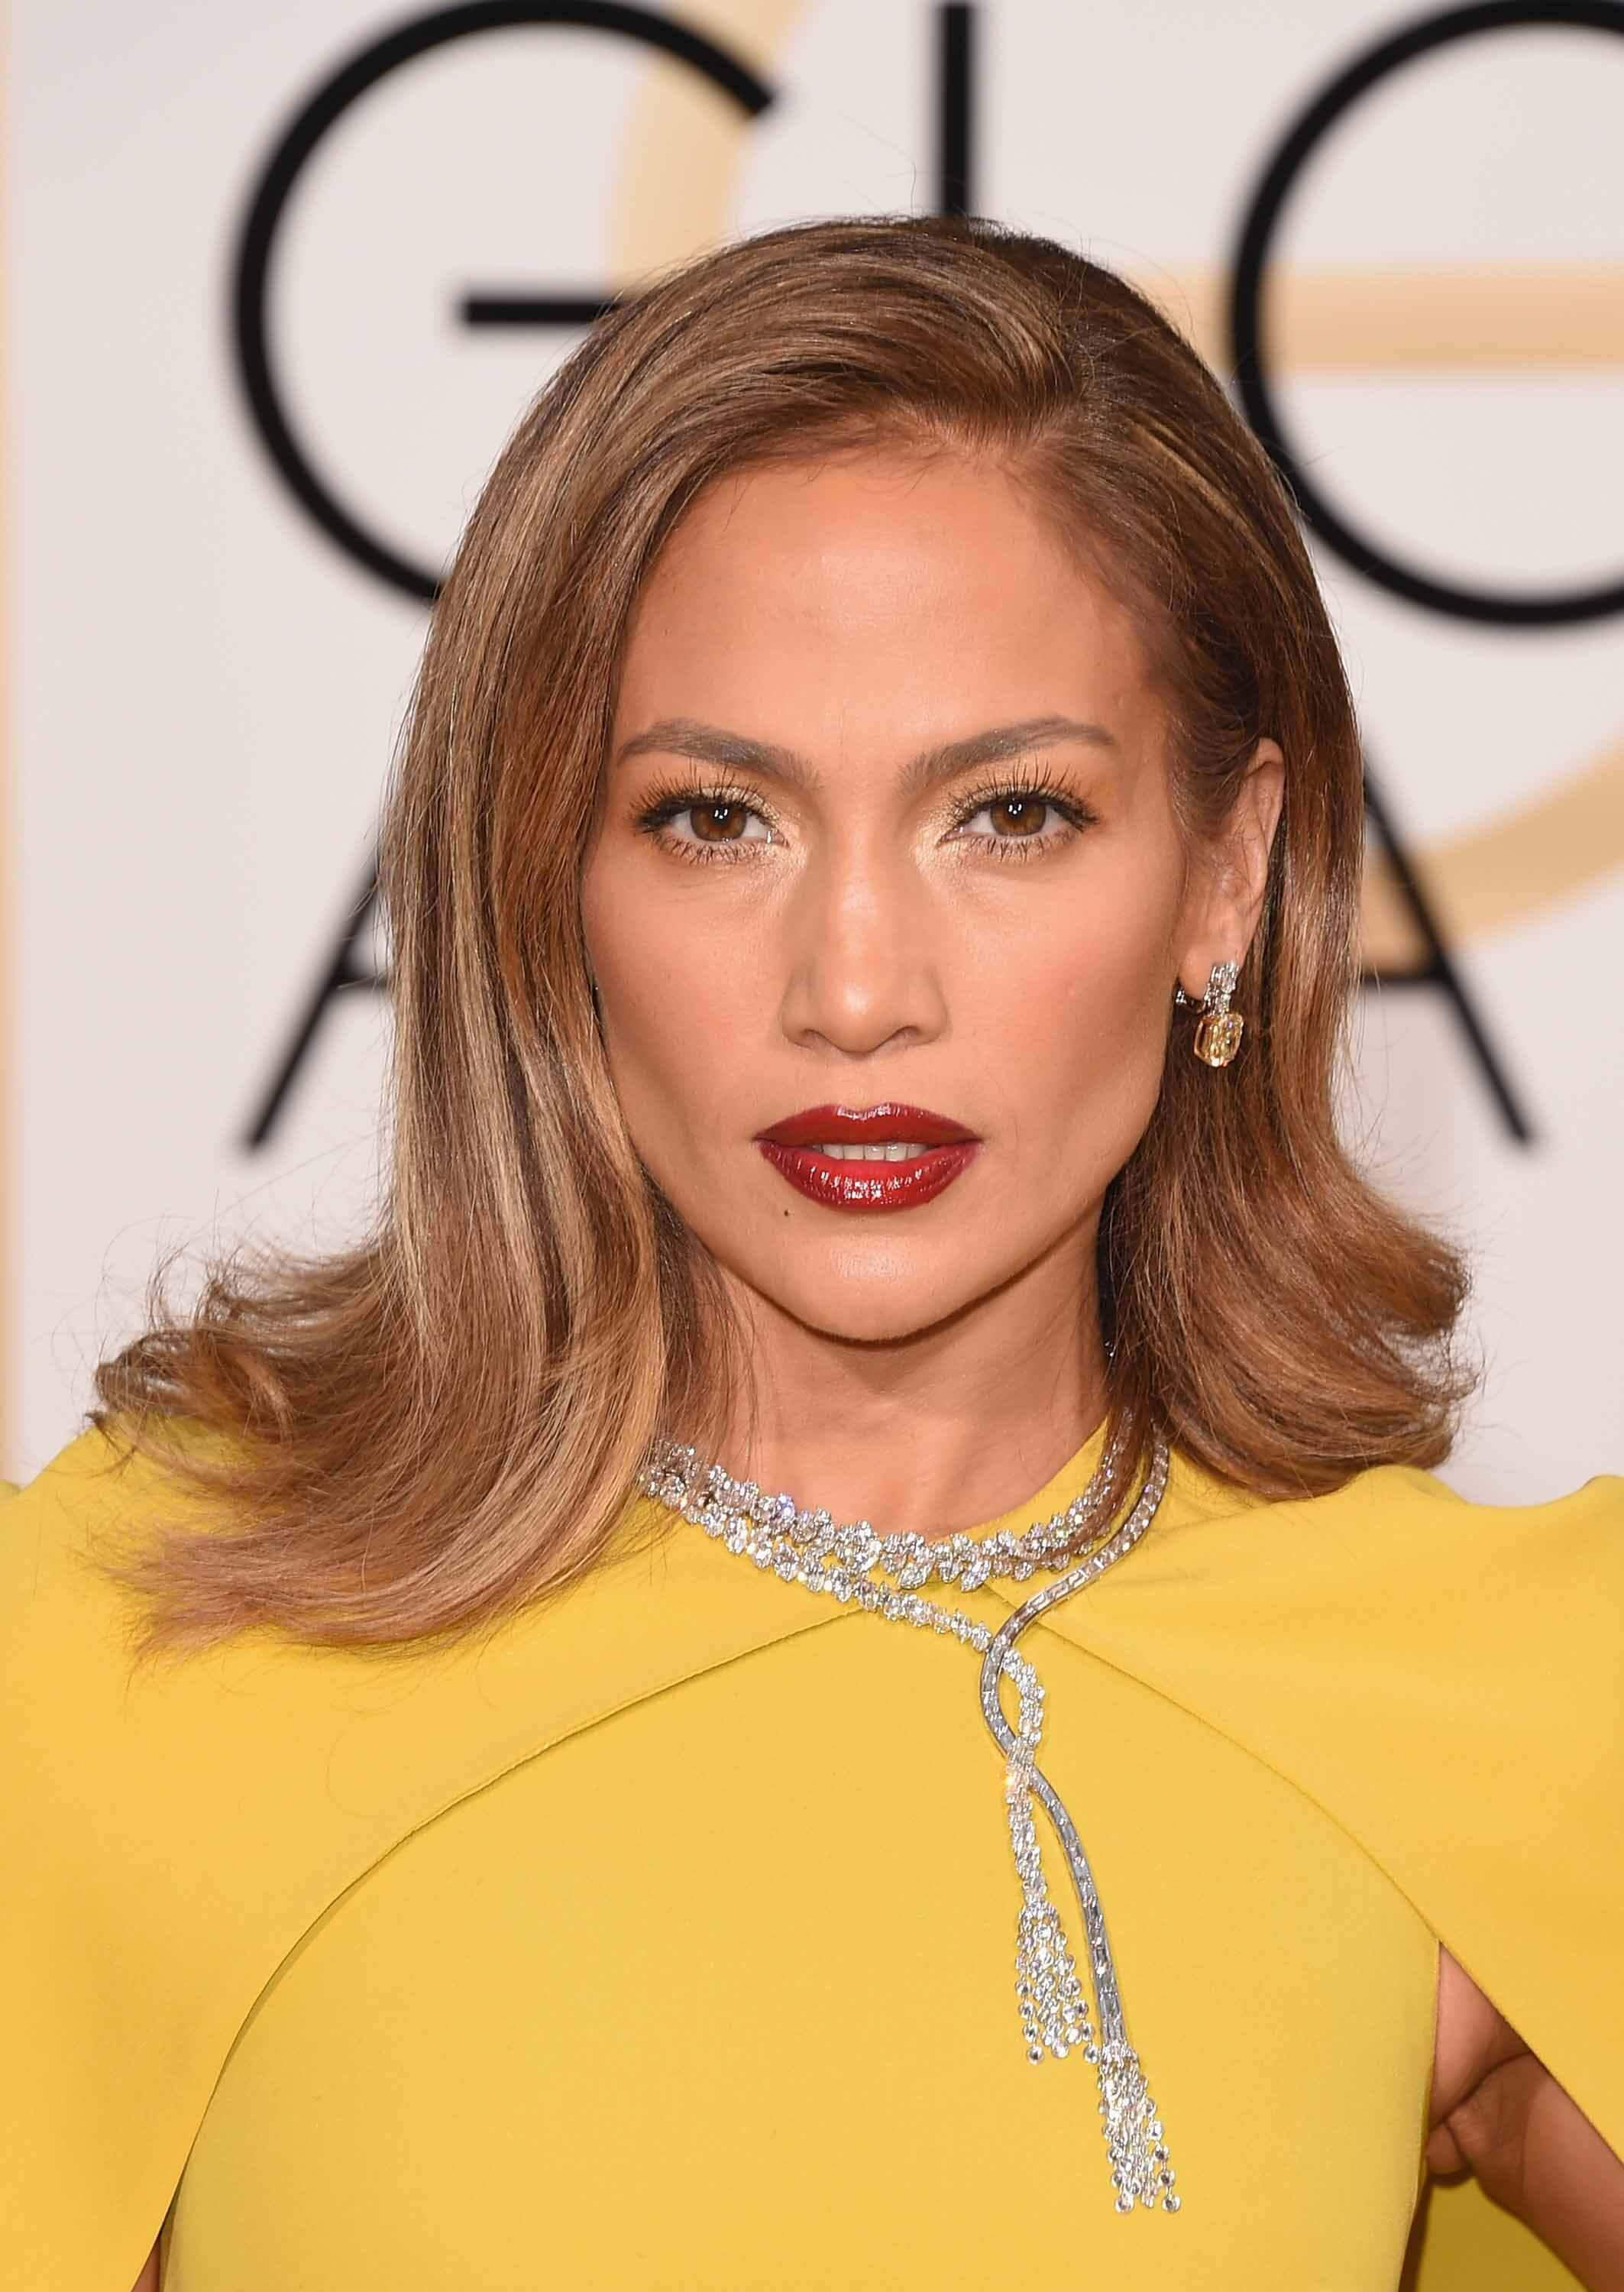 Brown hair with highlights: Jennifer Lopez with brown hair with highlights wearing a yellow dress on the red carpet